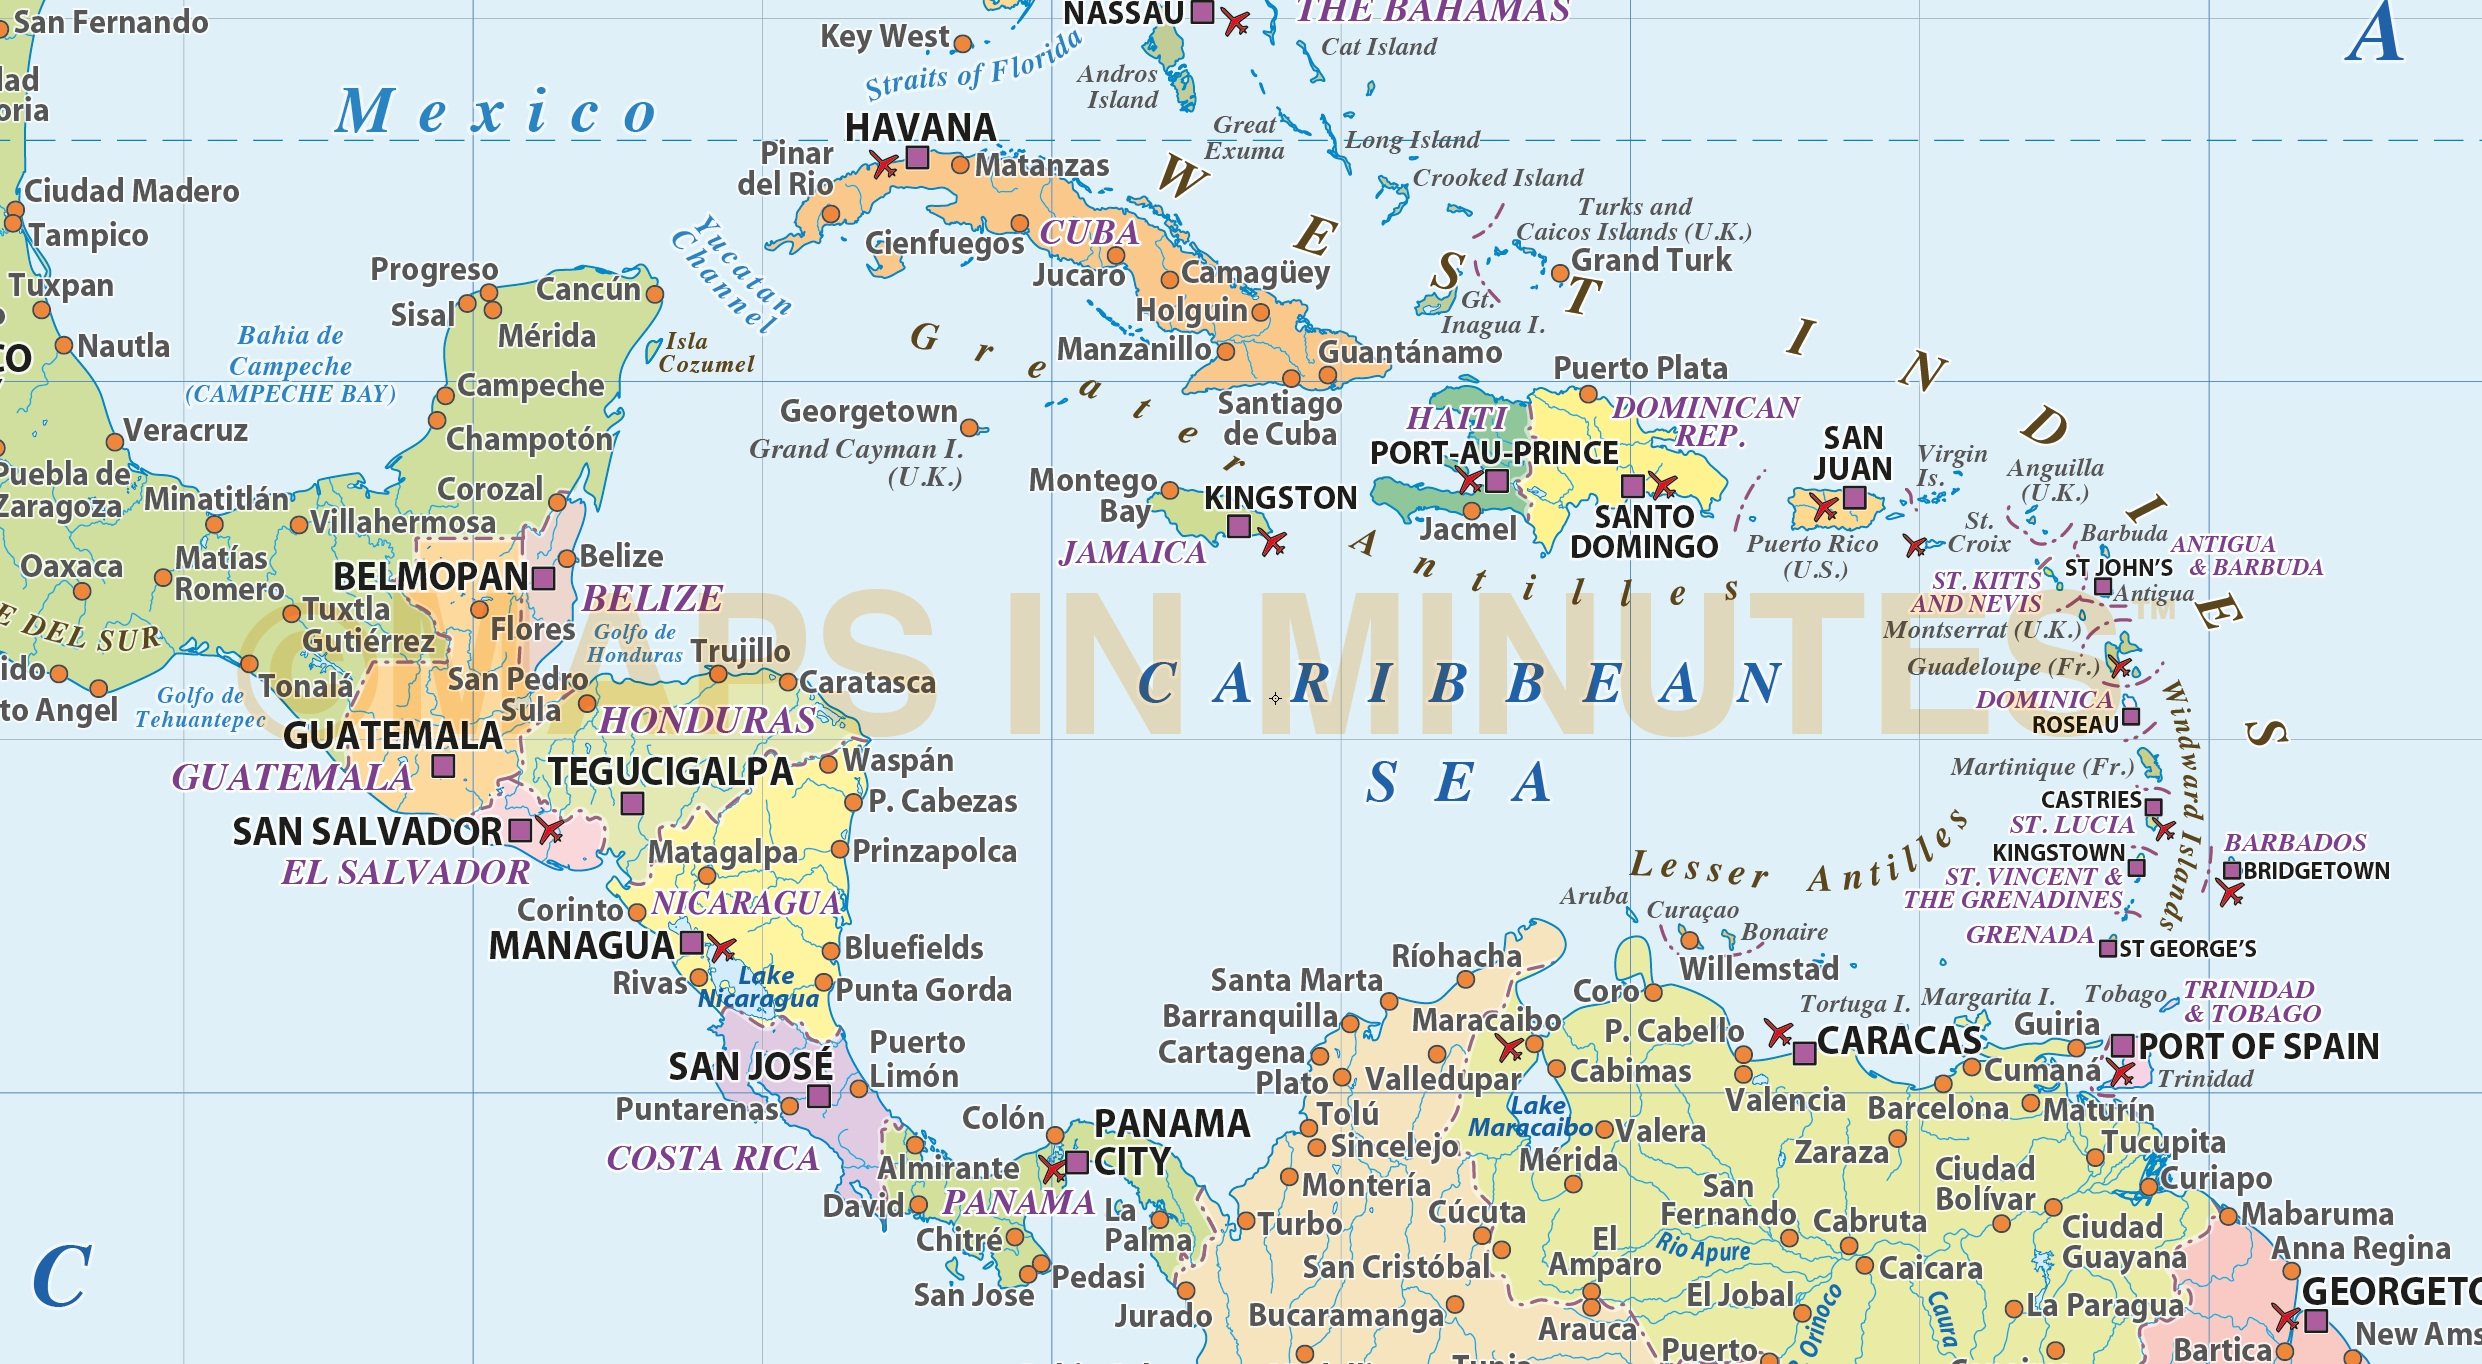 Central America & Caribbean Basic Political Map @10m scale in ...